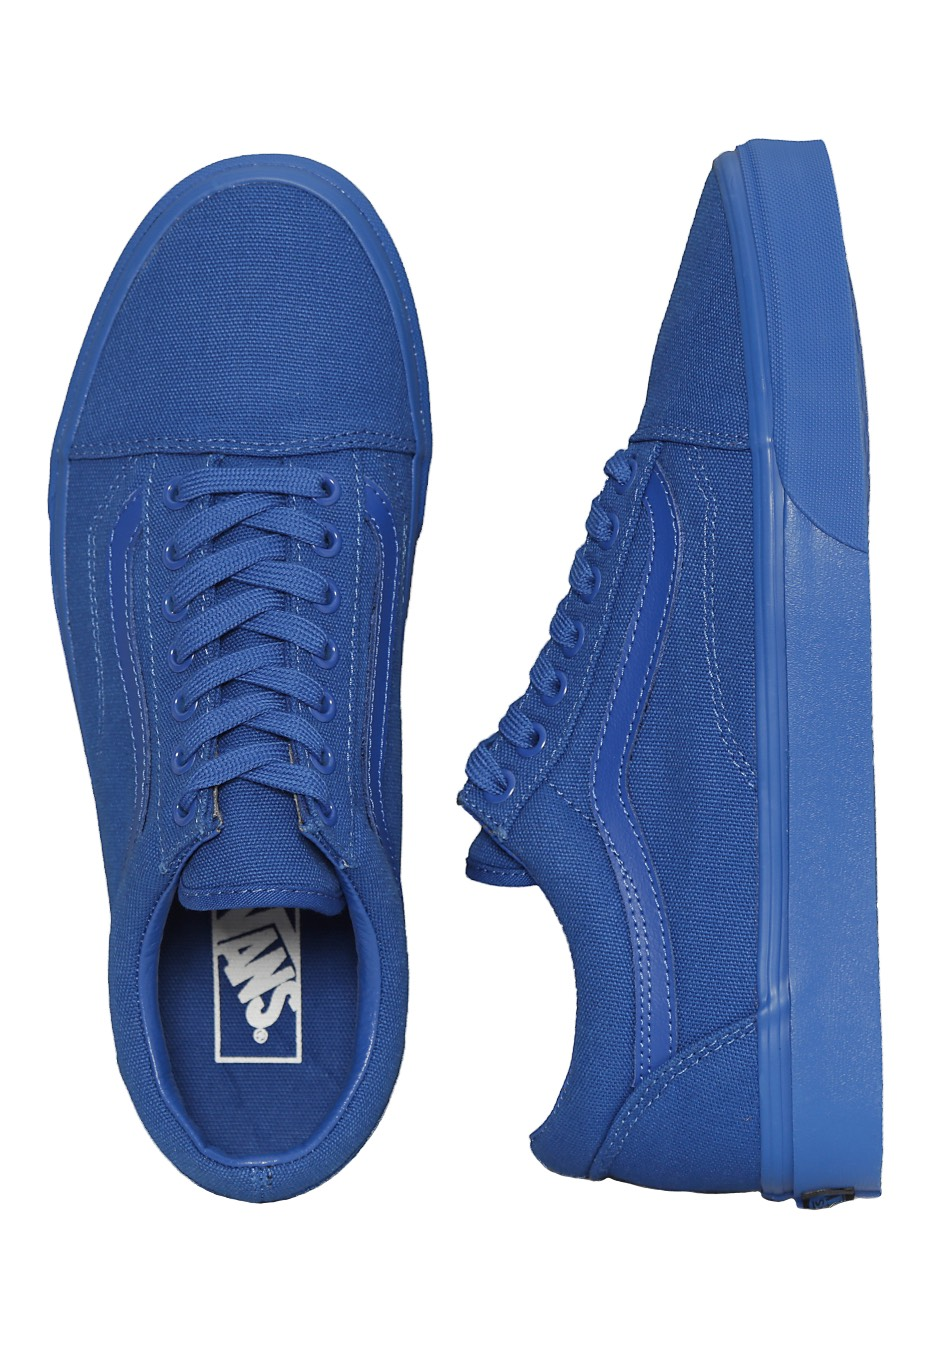 a855a6f5f6 Vans - Old Skool Nautical Blue - Shoes - Impericon.com UK